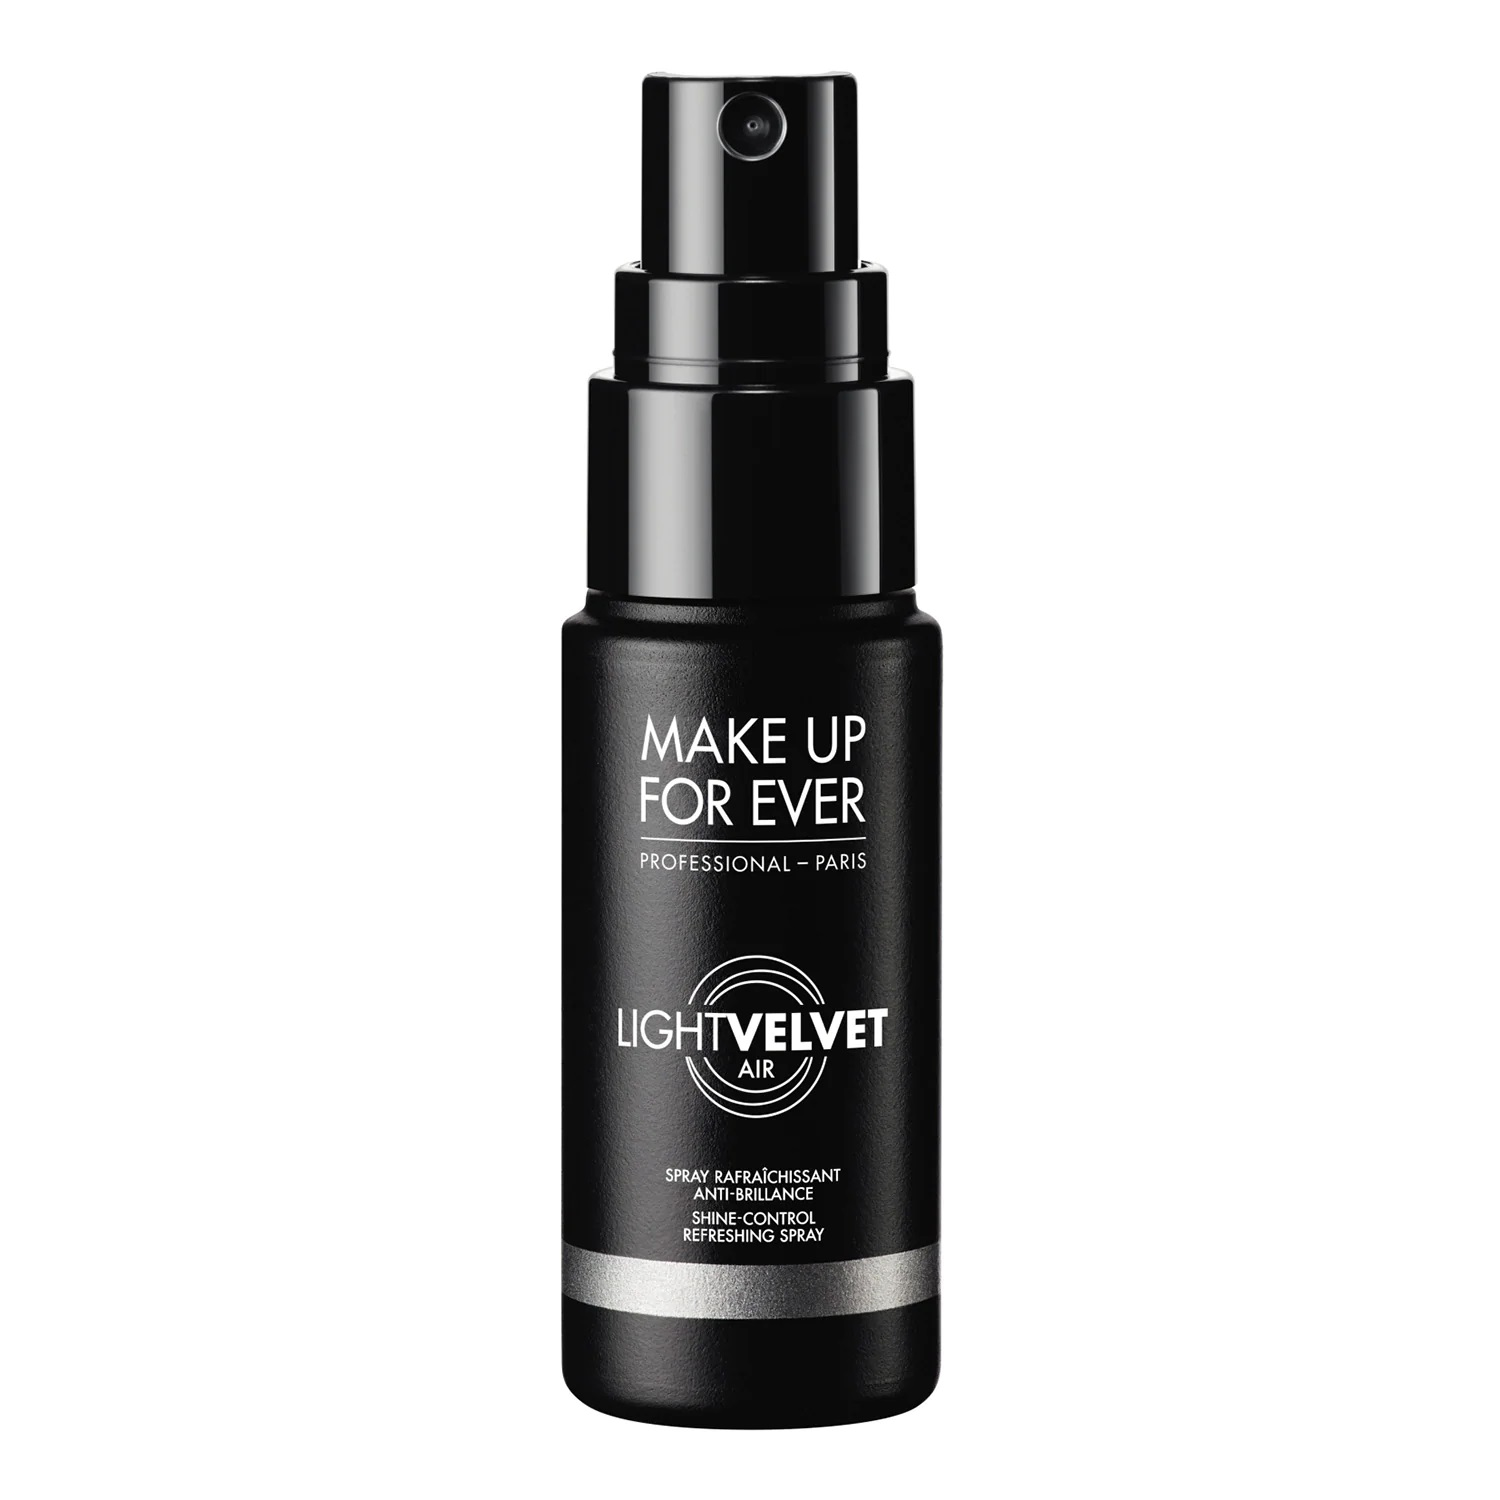 Spray matificante y fijador de Make Up For Ever